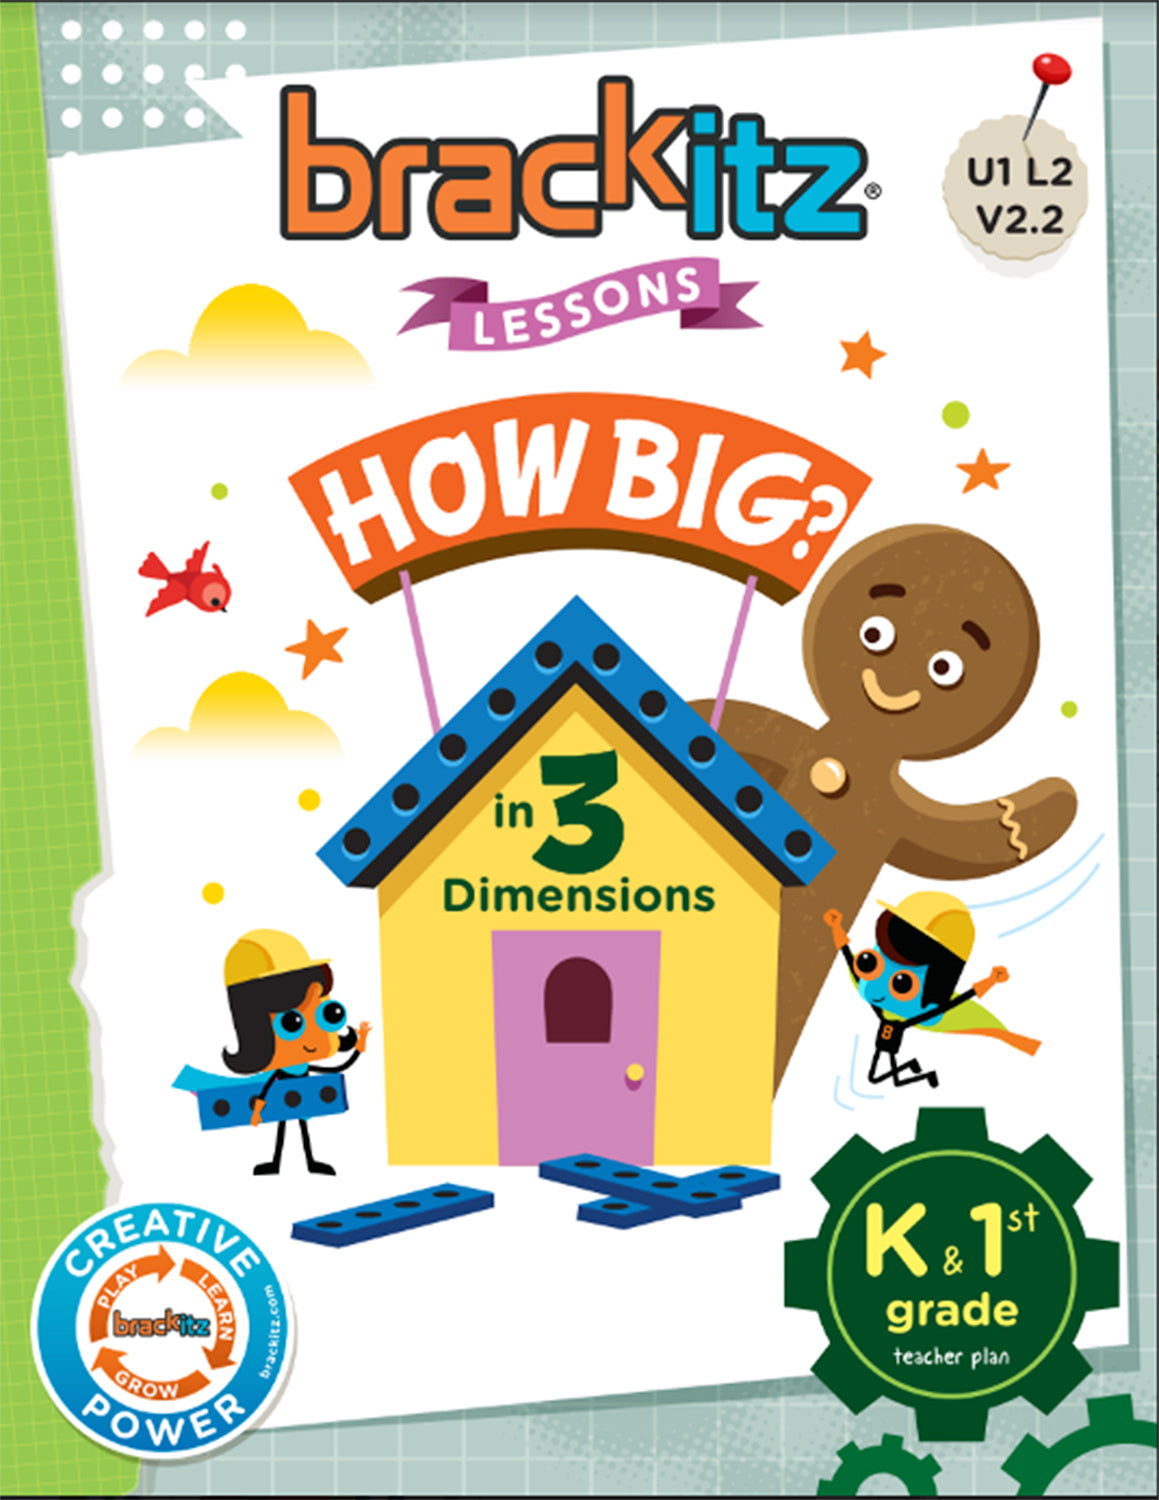 Brackitz Education Building Toy - Grades K/1 Unit 1